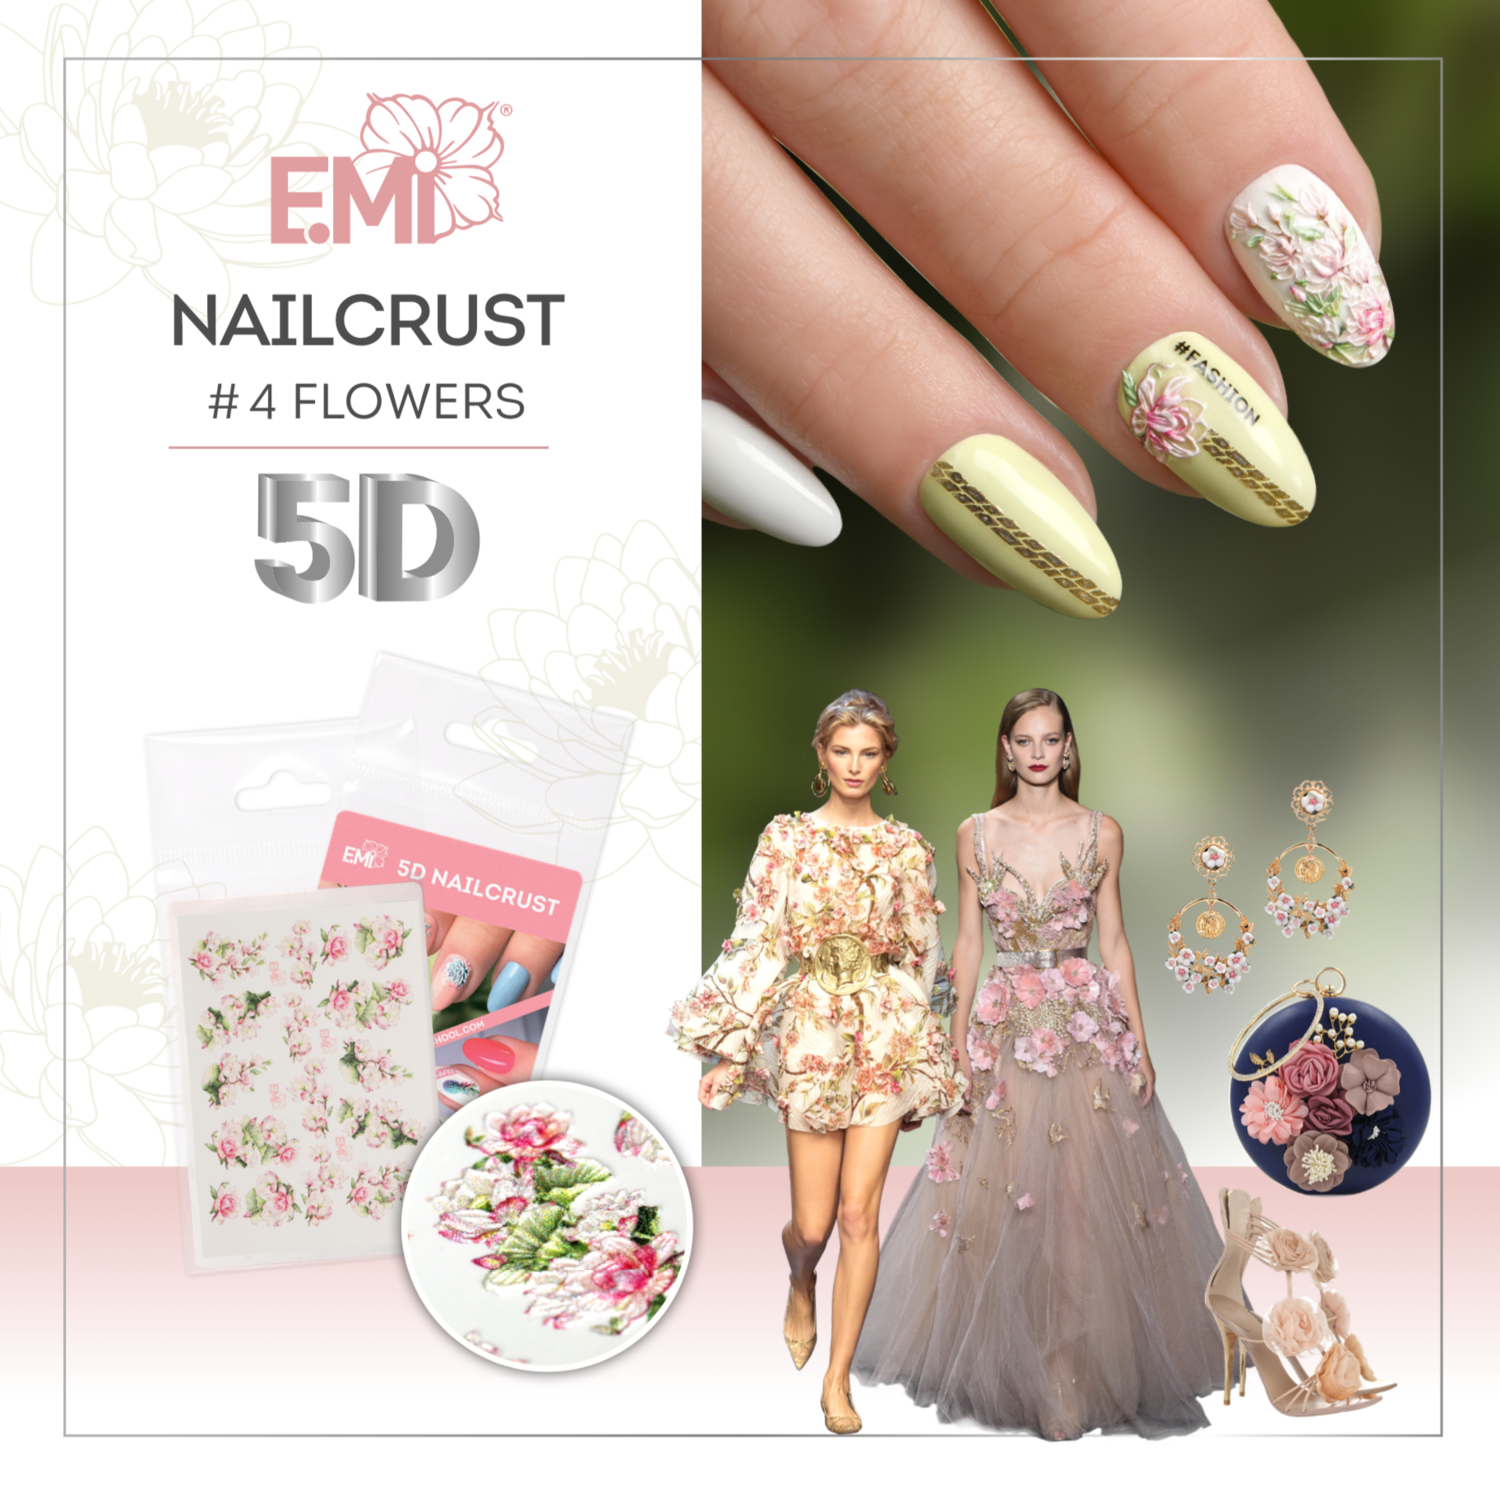 Nailcrust 5D #4 Flowers